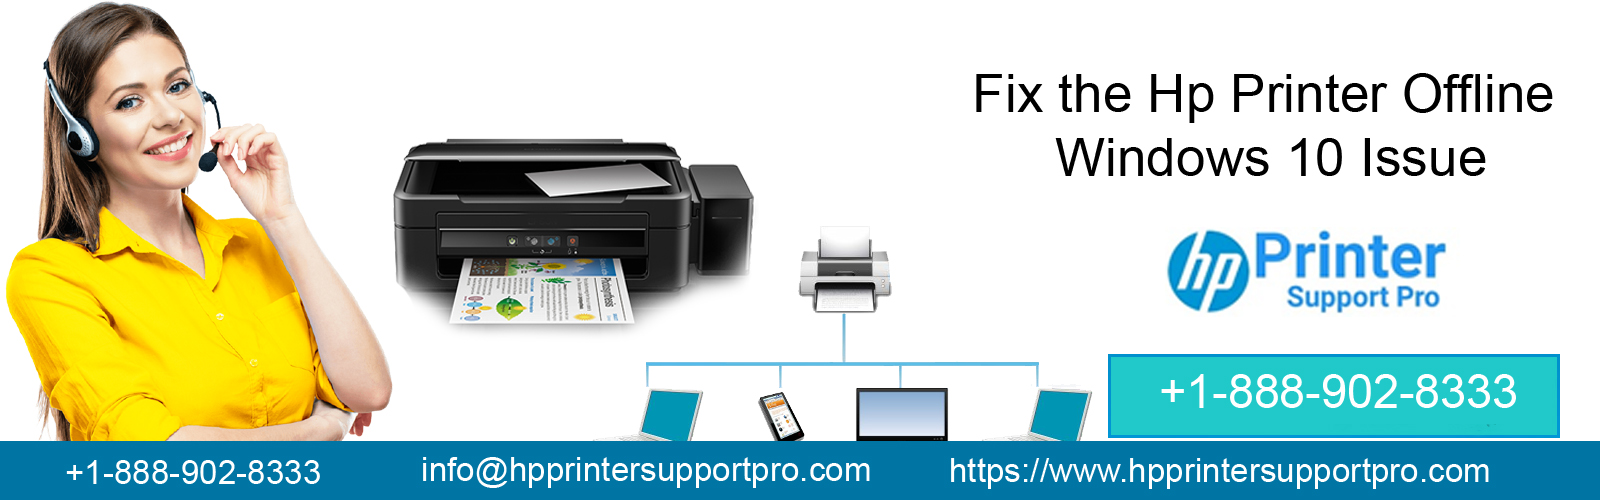 1-888-902-8333-Fix the Hp Printer Offline Windows 10 issue